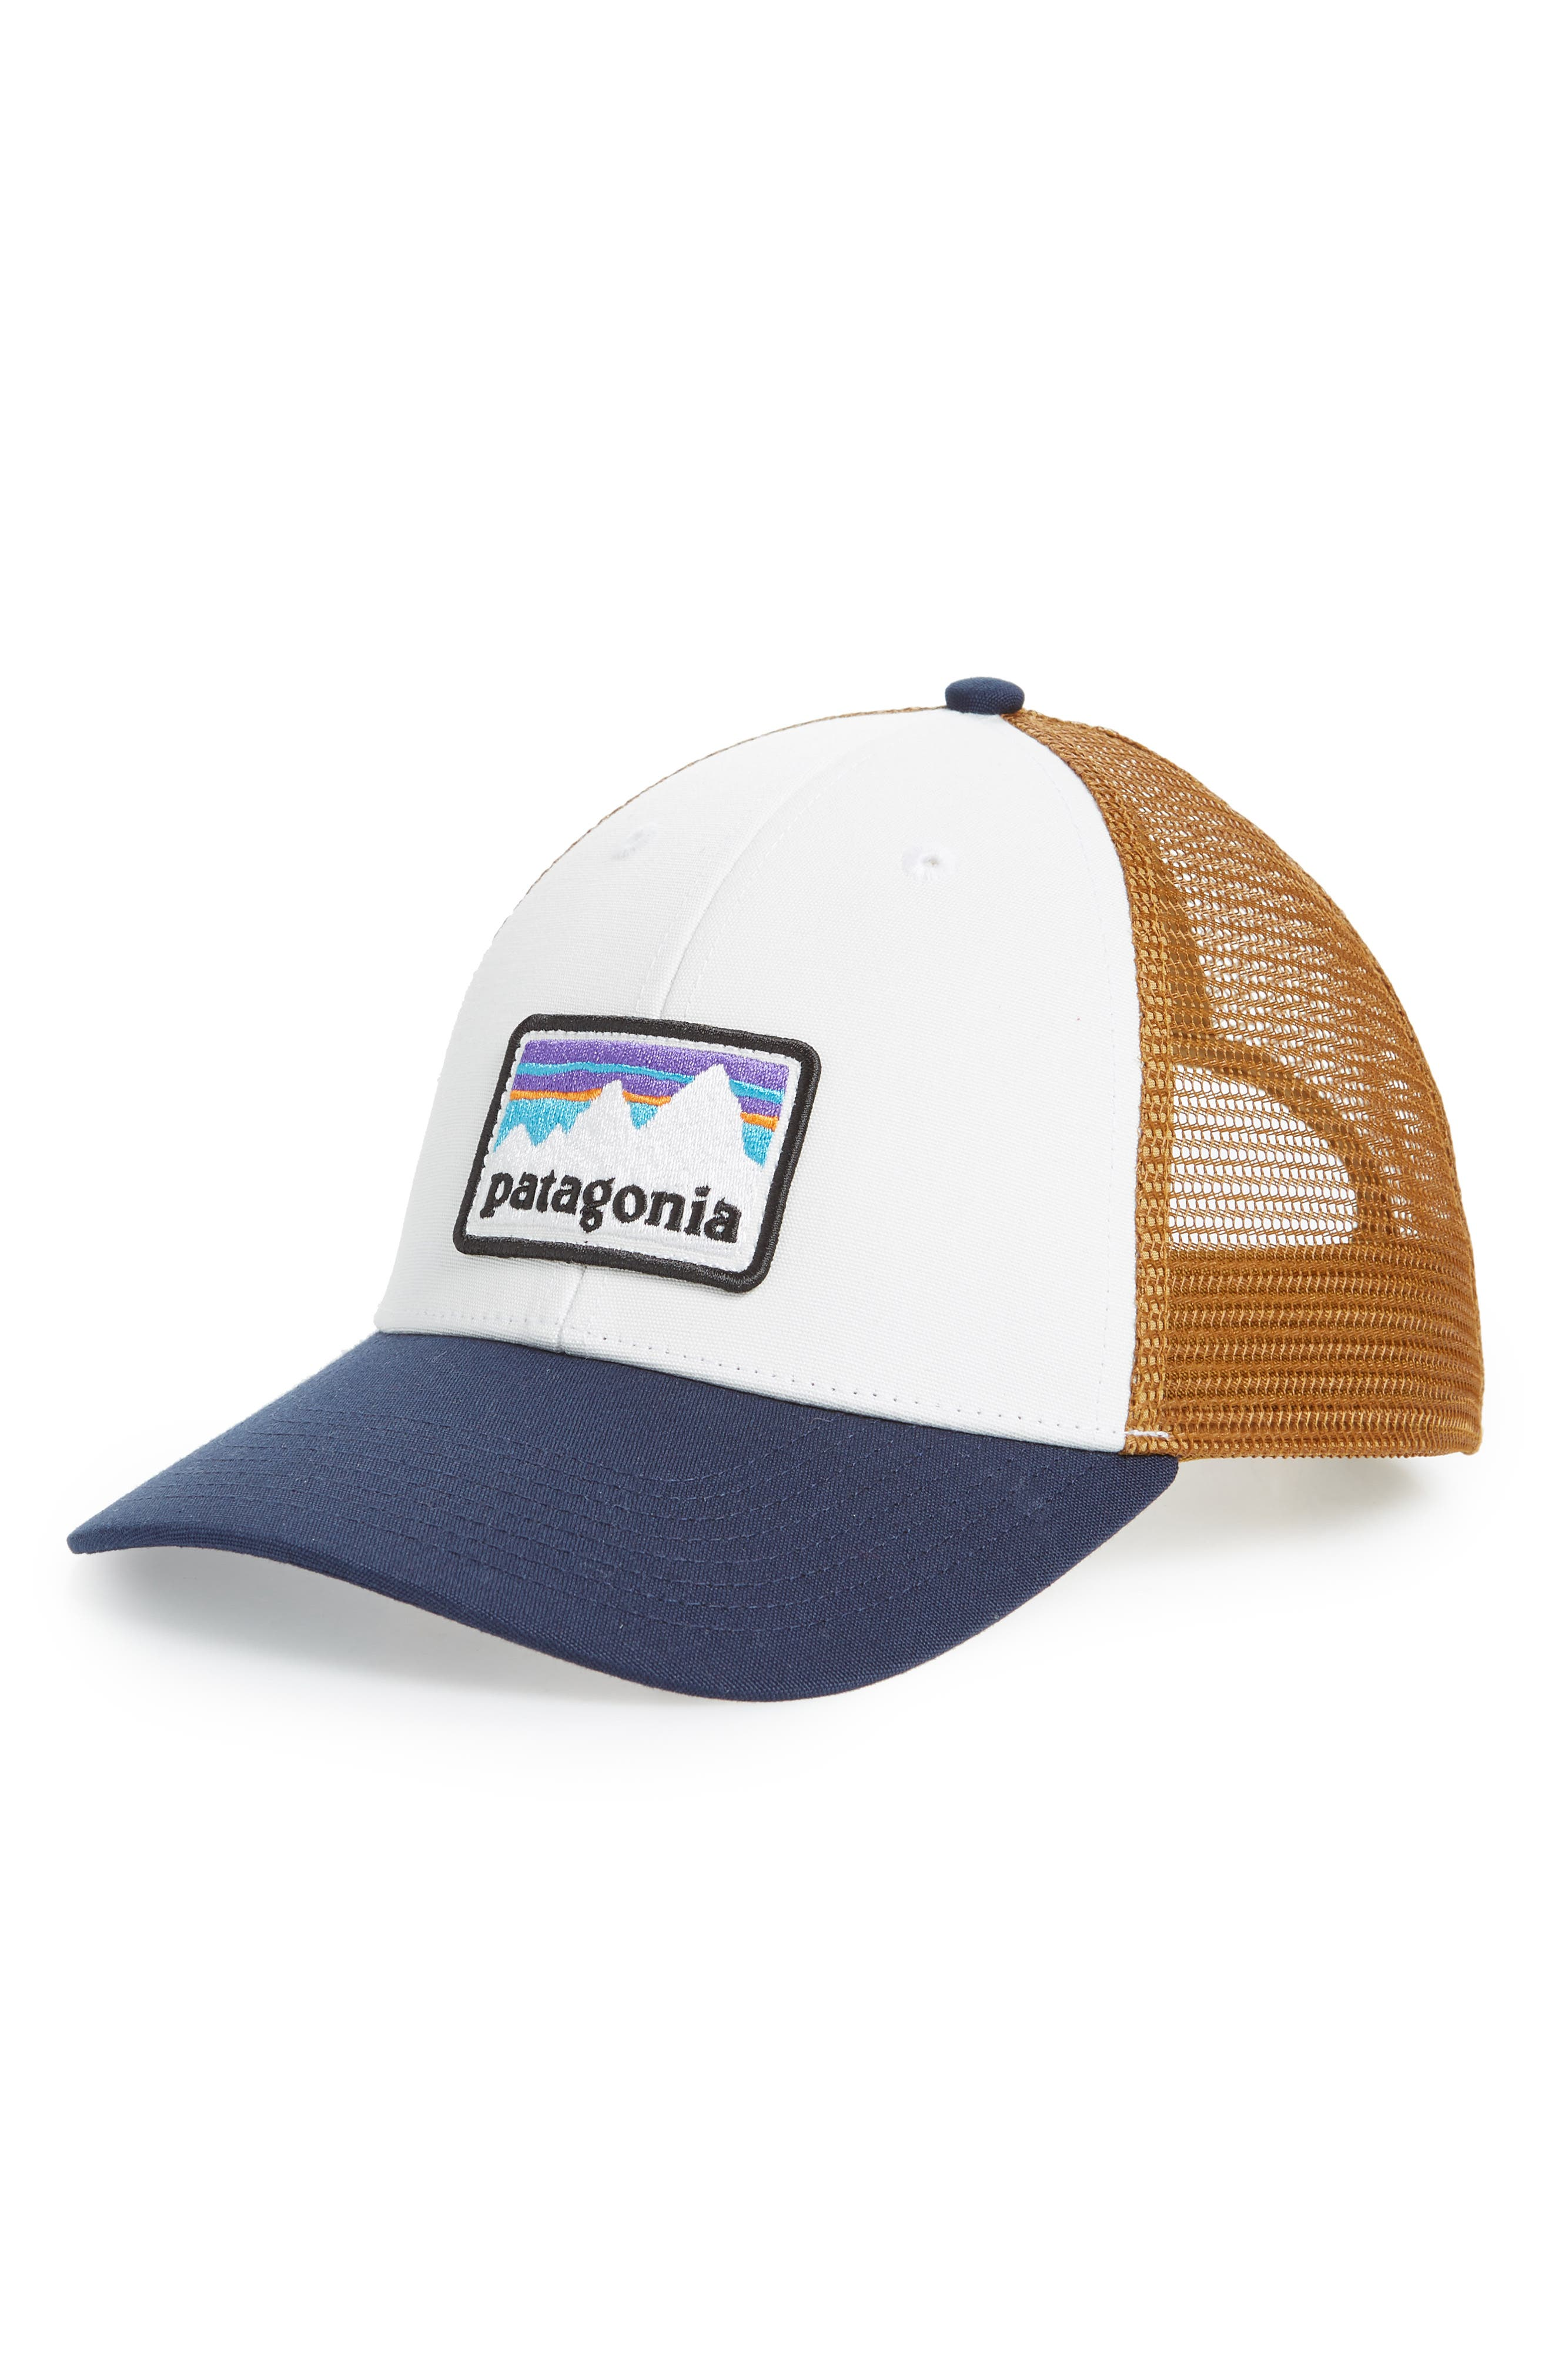 Shop Sticker Trucker Hat,                             Main thumbnail 1, color,                             WHITE WITH CLASSIC NAVY